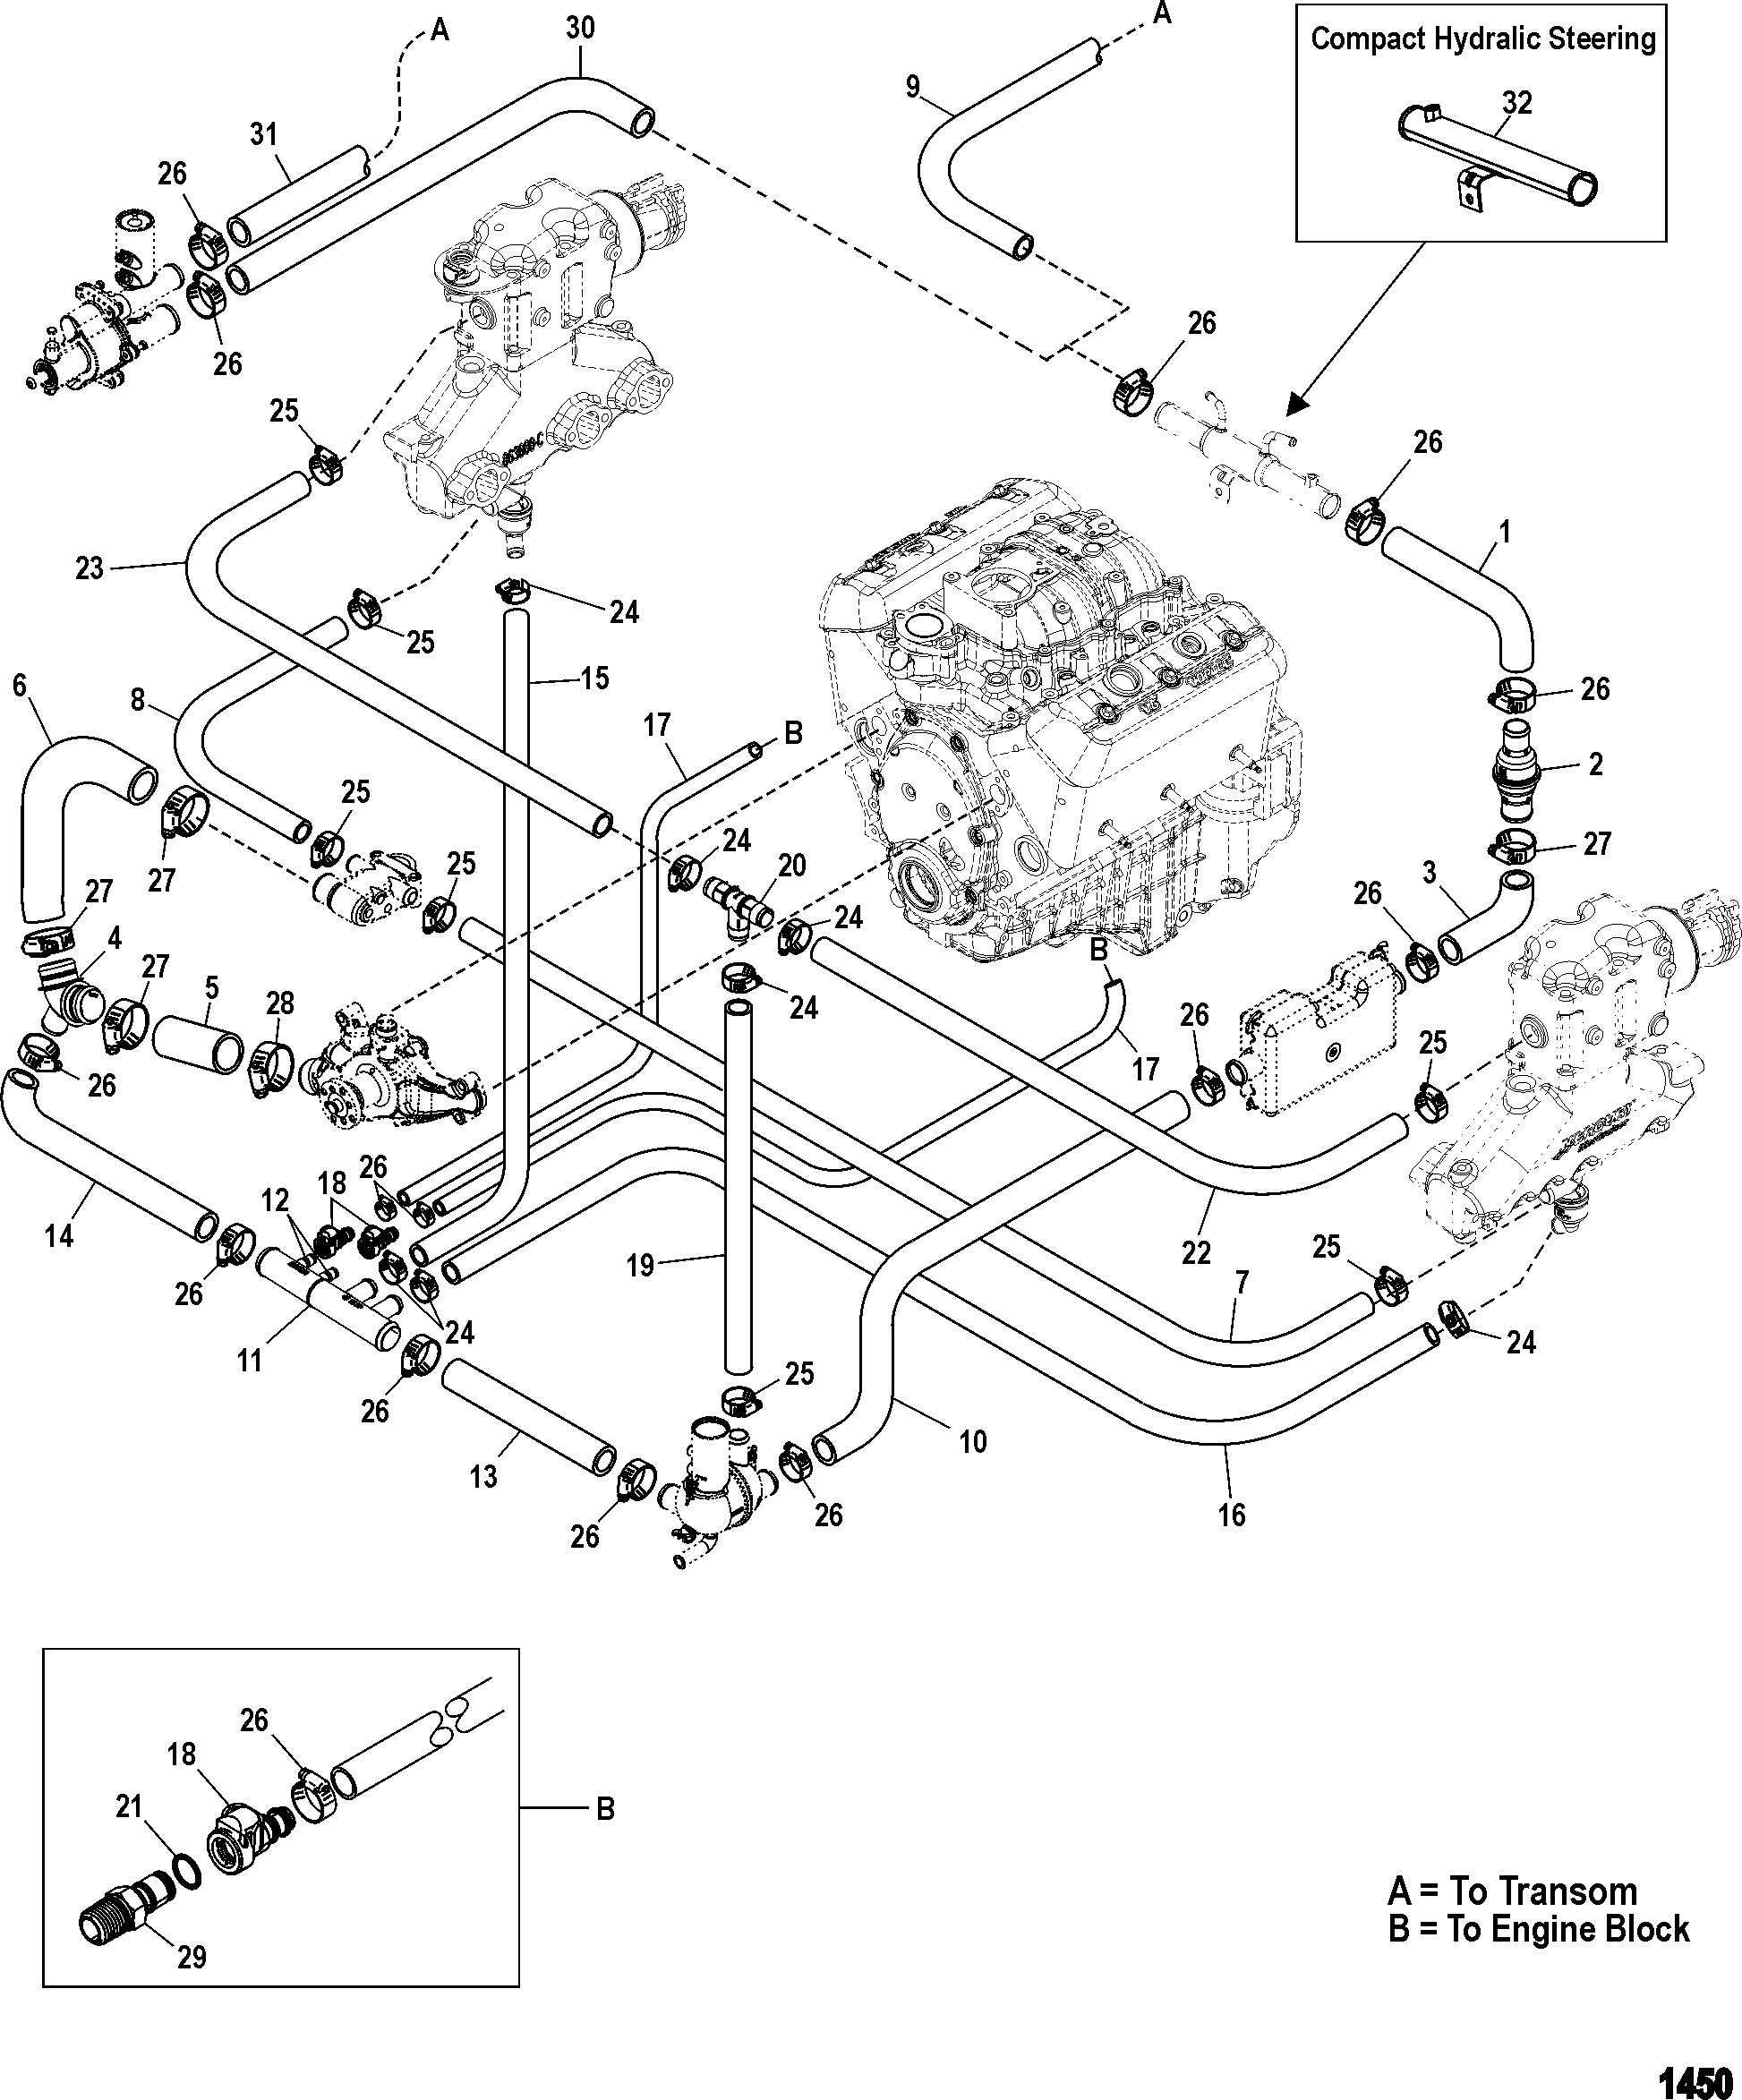 Chevy 4 3 V6 Engine Diagram - wiring diagram on the net on